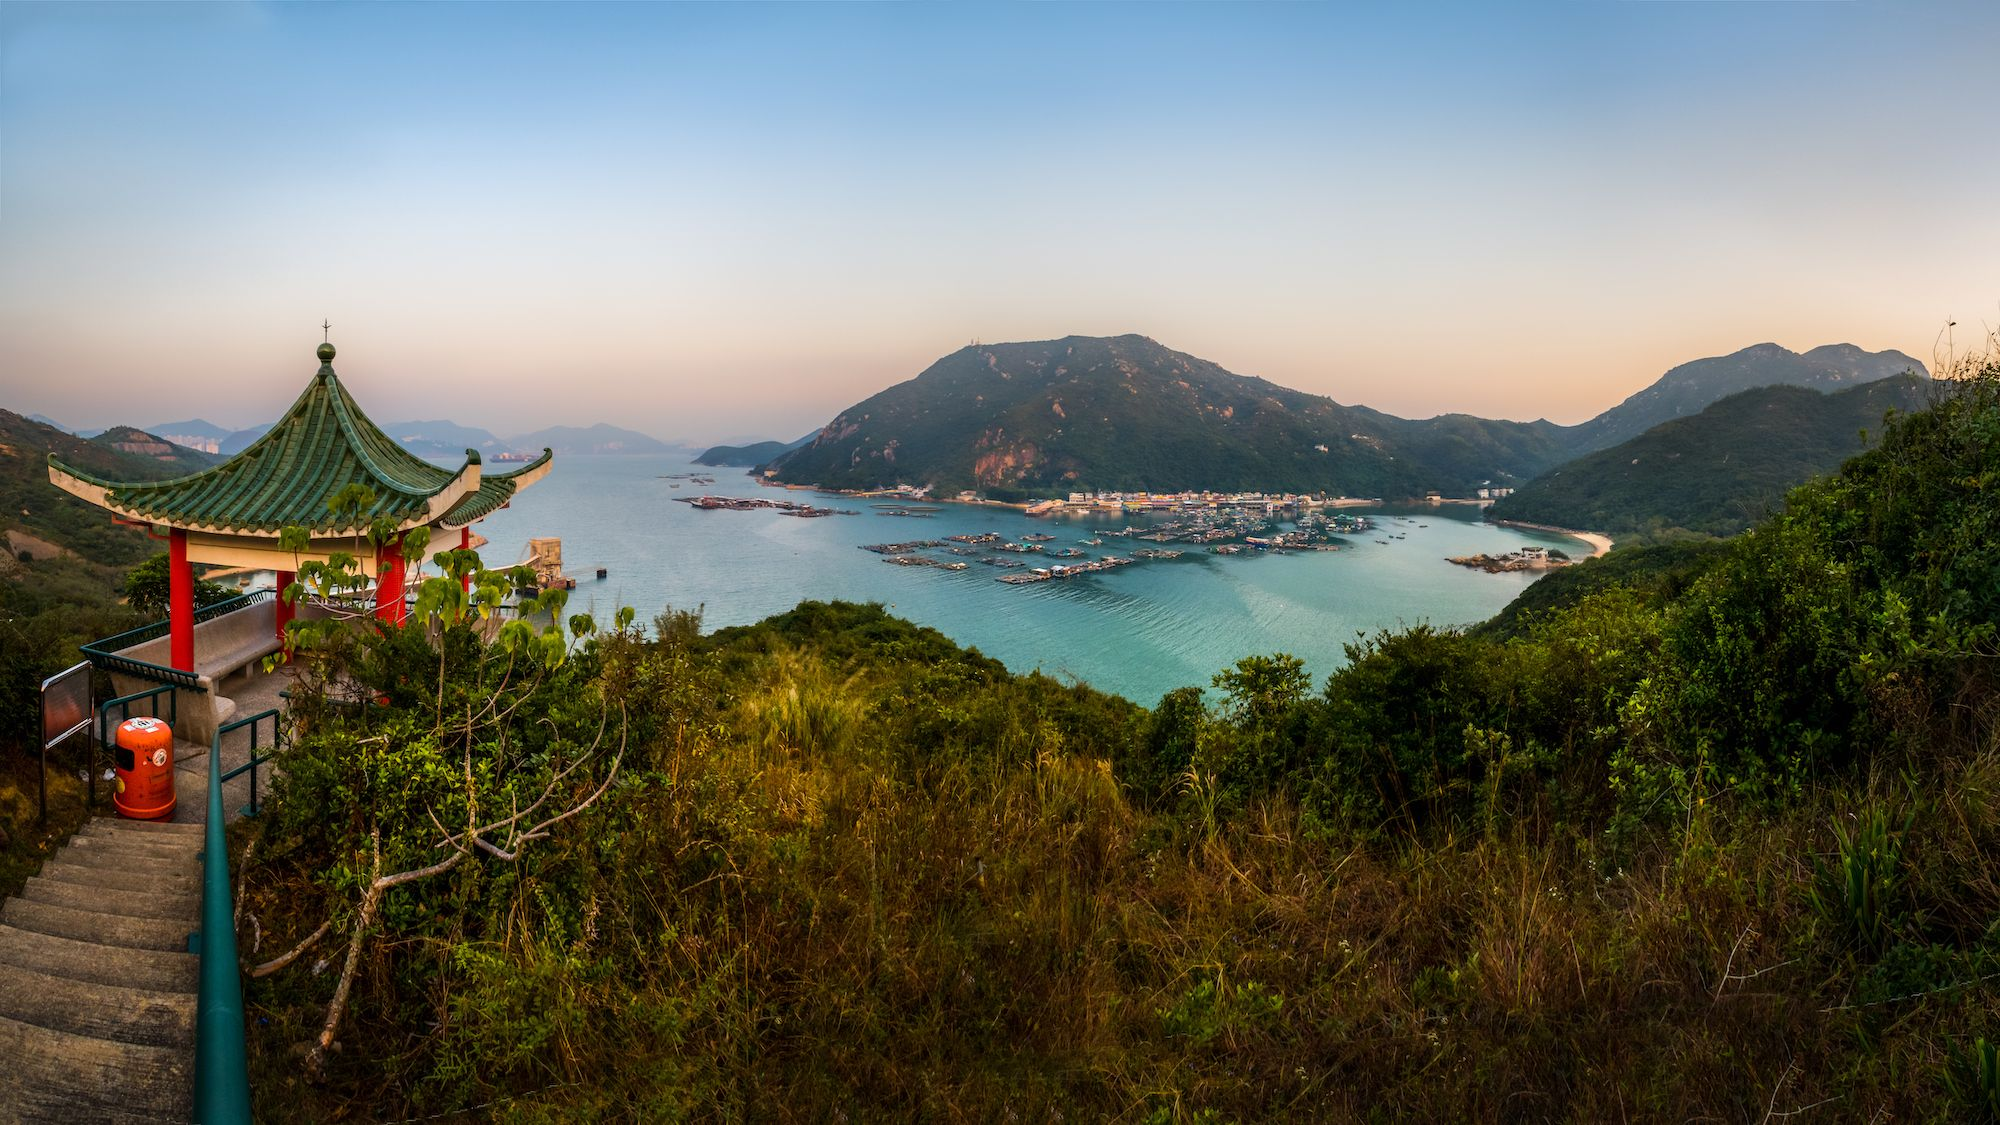 A scenic and tranquil panoramic view of Sok Kwu Wan, Lamma island from along the walking trail during sunset. Sok Kwu Wan is popular and known as a fishing village town and famous tourist attraction with lots of seafood restaurants on the island, Hong Kong - China.